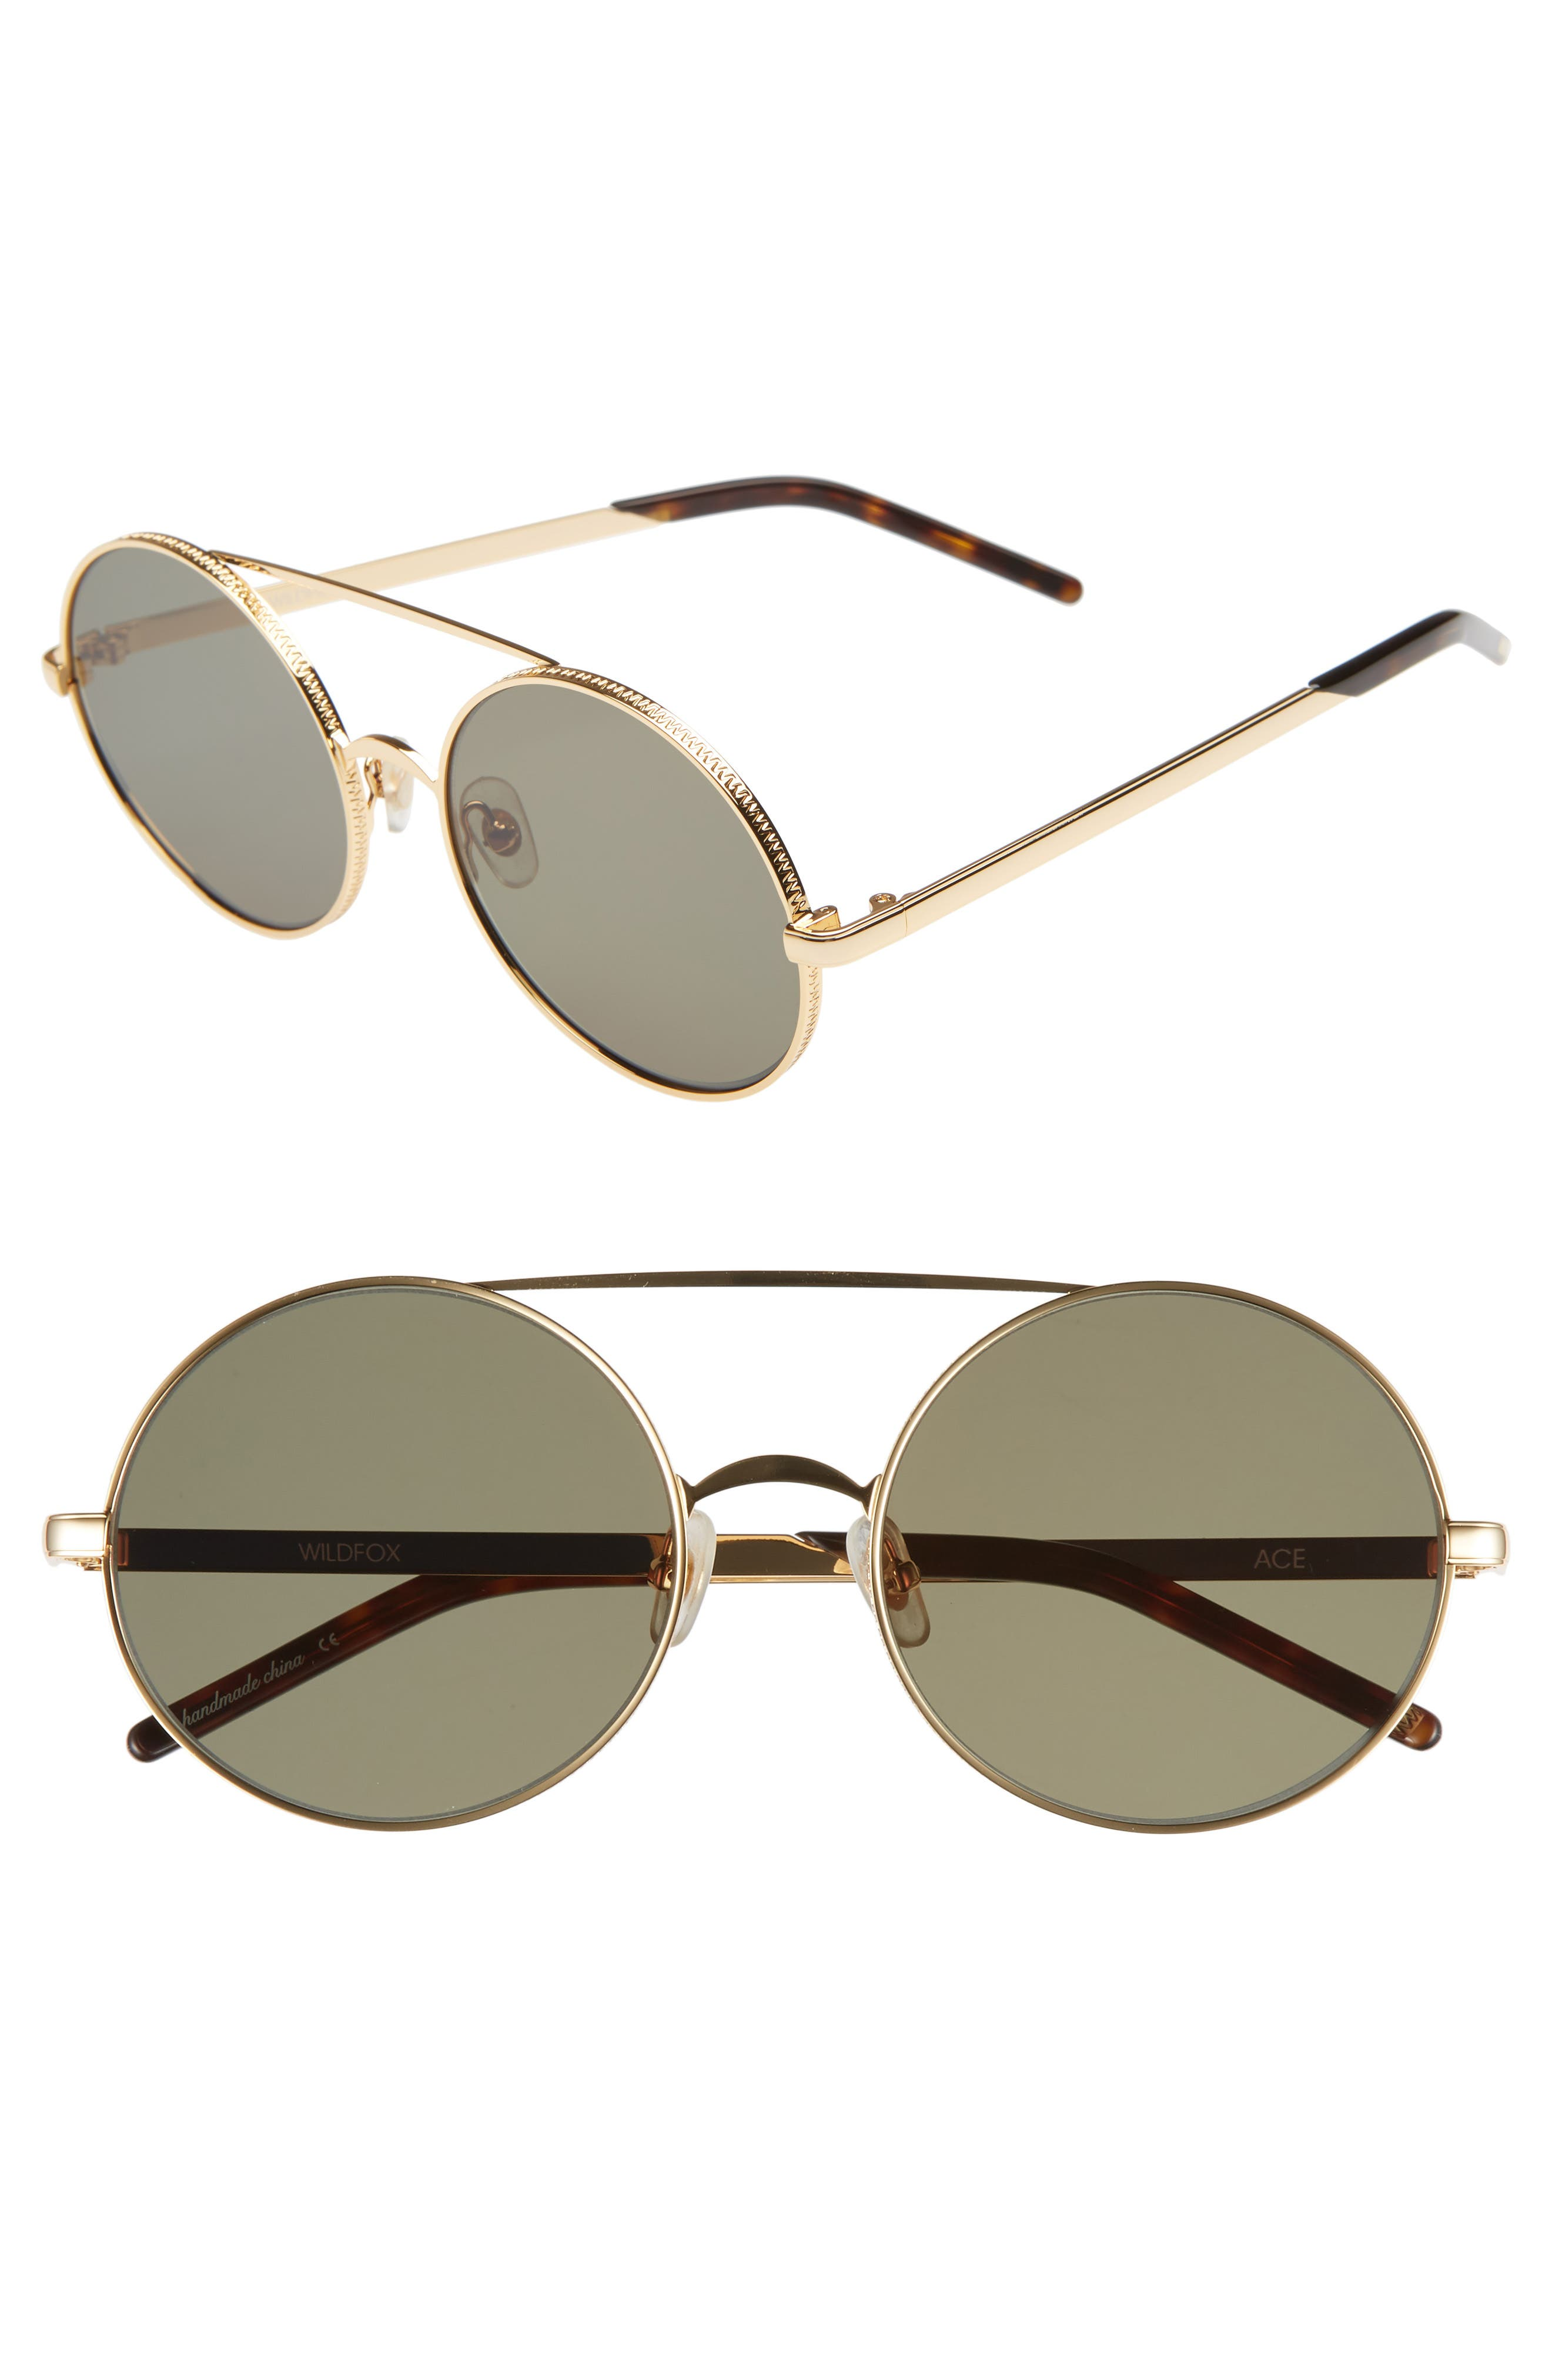 Ace 55mm Round Sunglasses,                         Main,                         color, GOLD/ G 15 SOLID